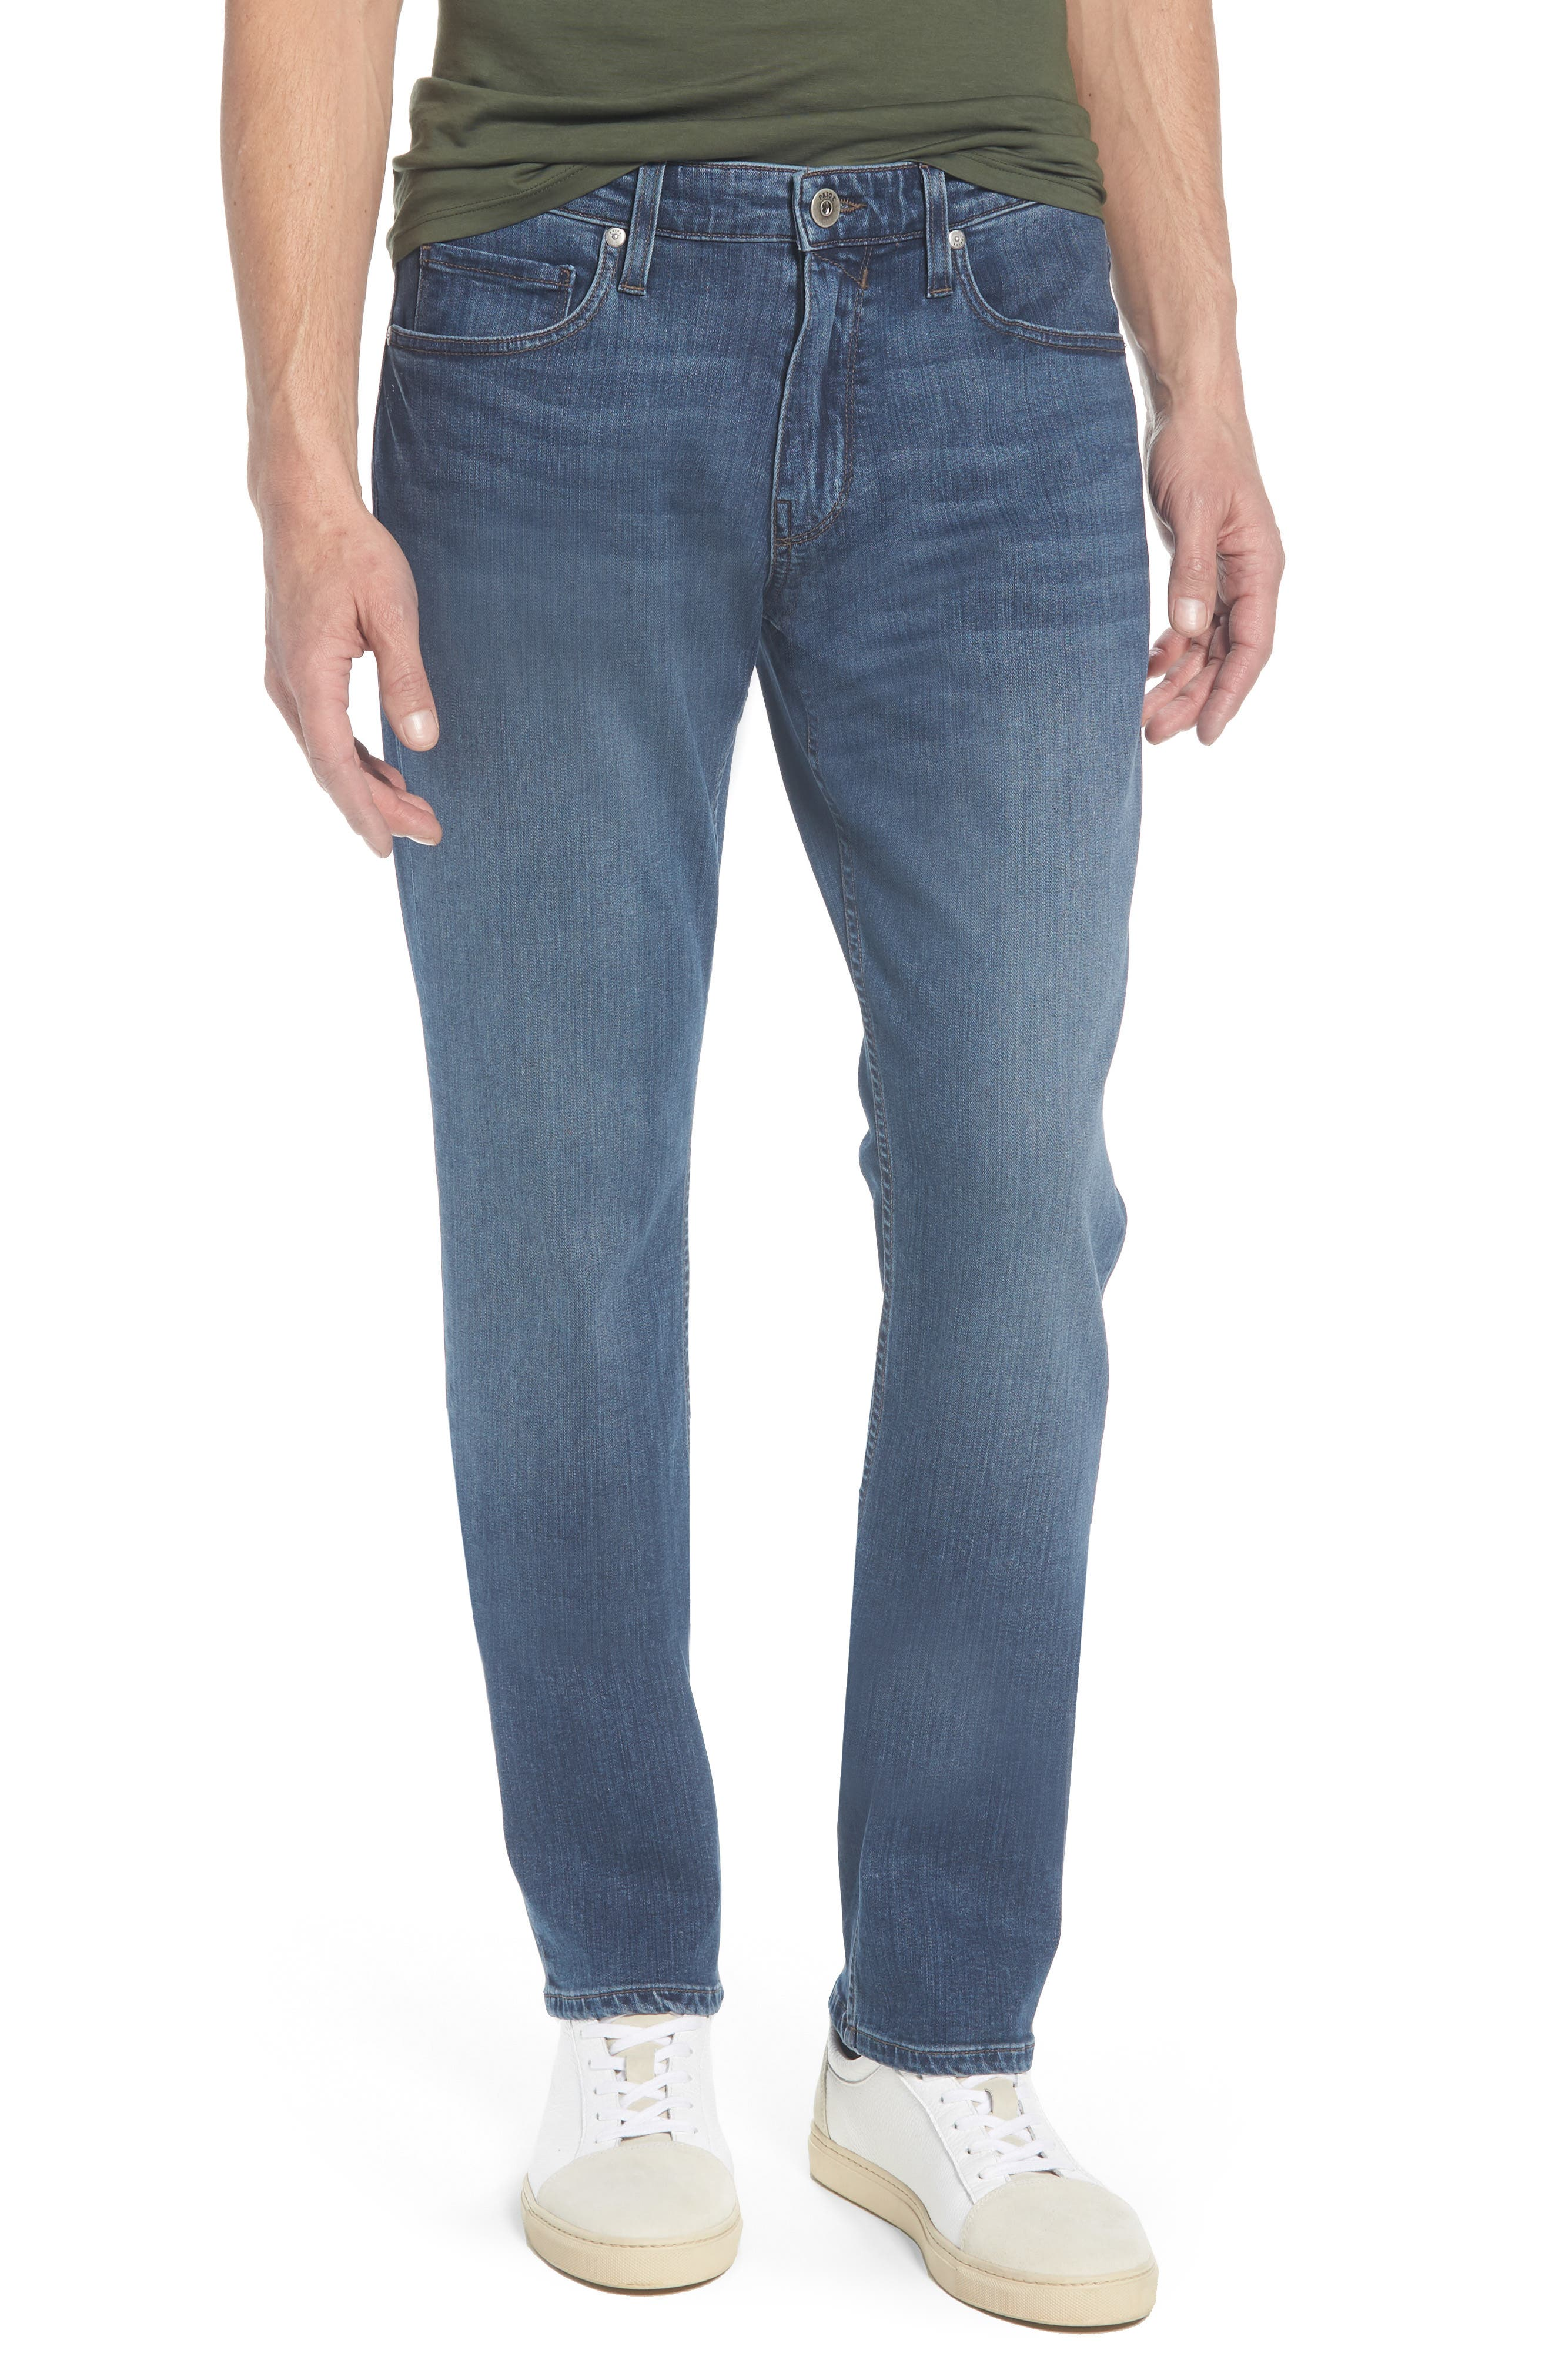 PAIGE Federal Slim Straight Leg Jeans, Main, color, 400